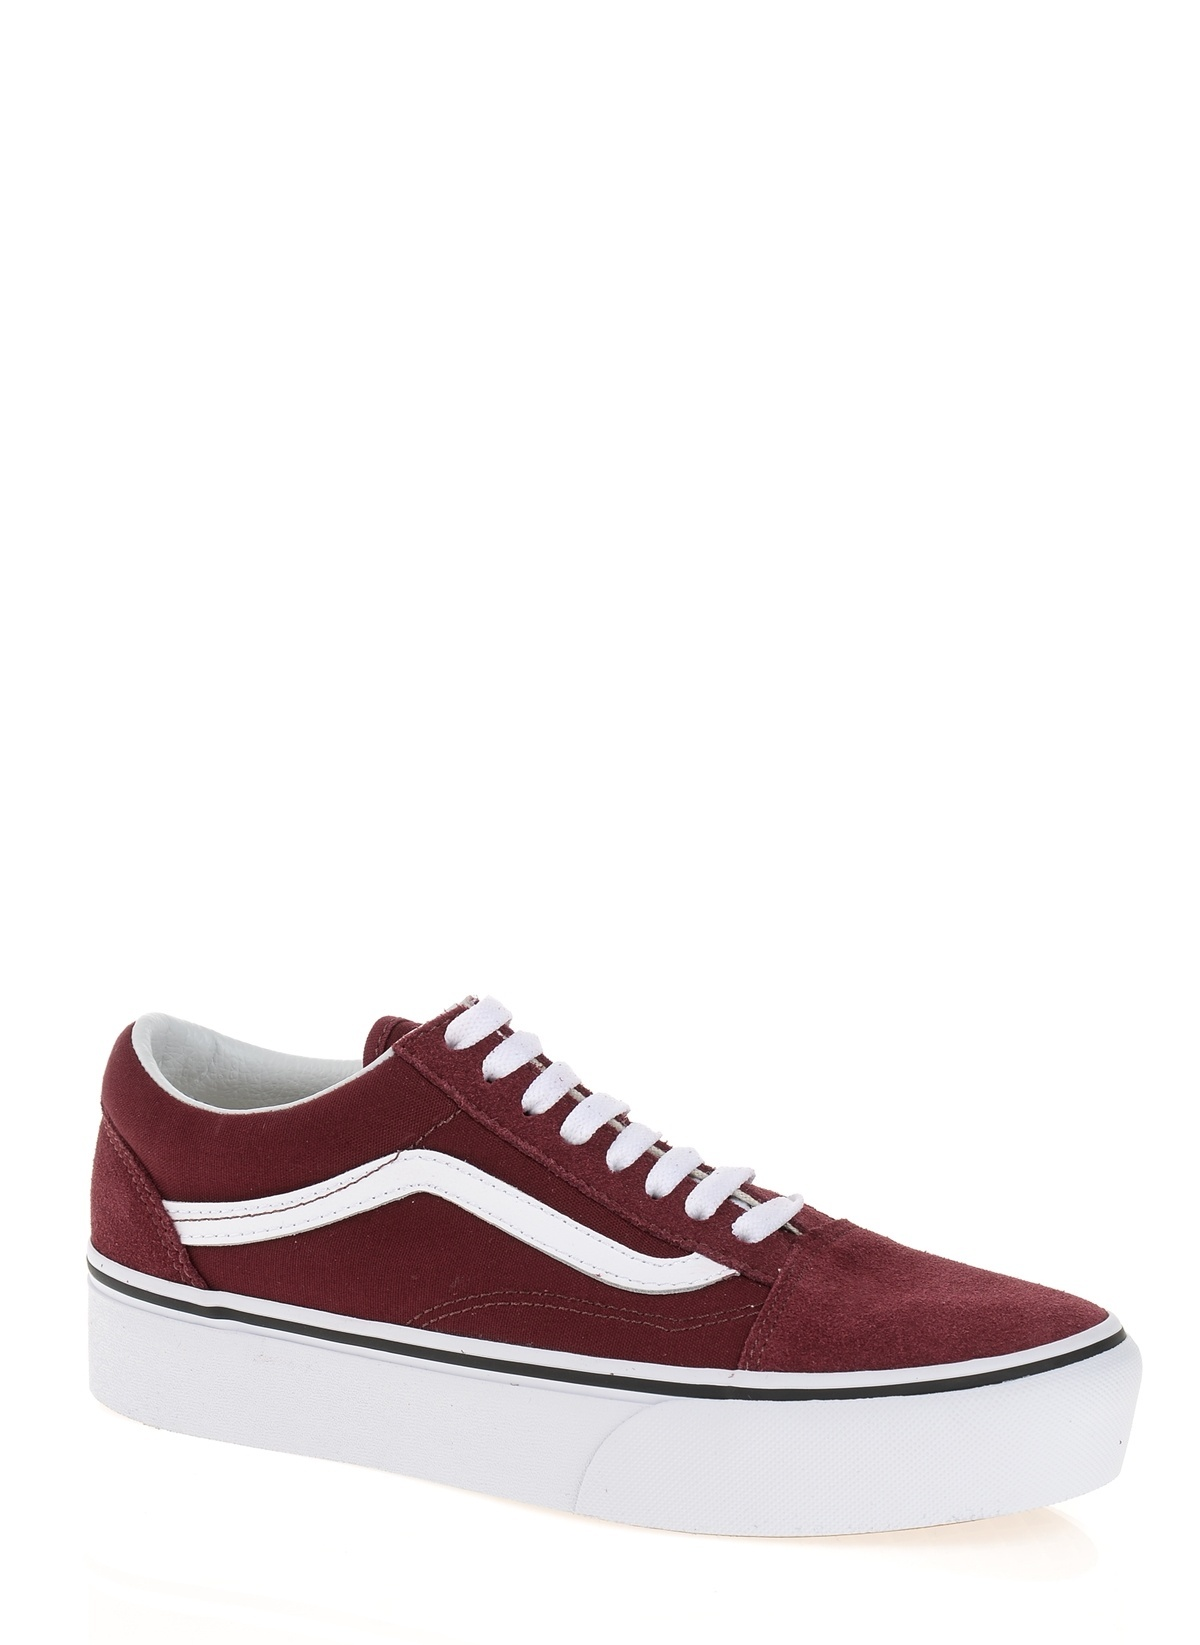 979b2ebb90f2c5 Vans Kadın Old Skool Platform Port Royale True White